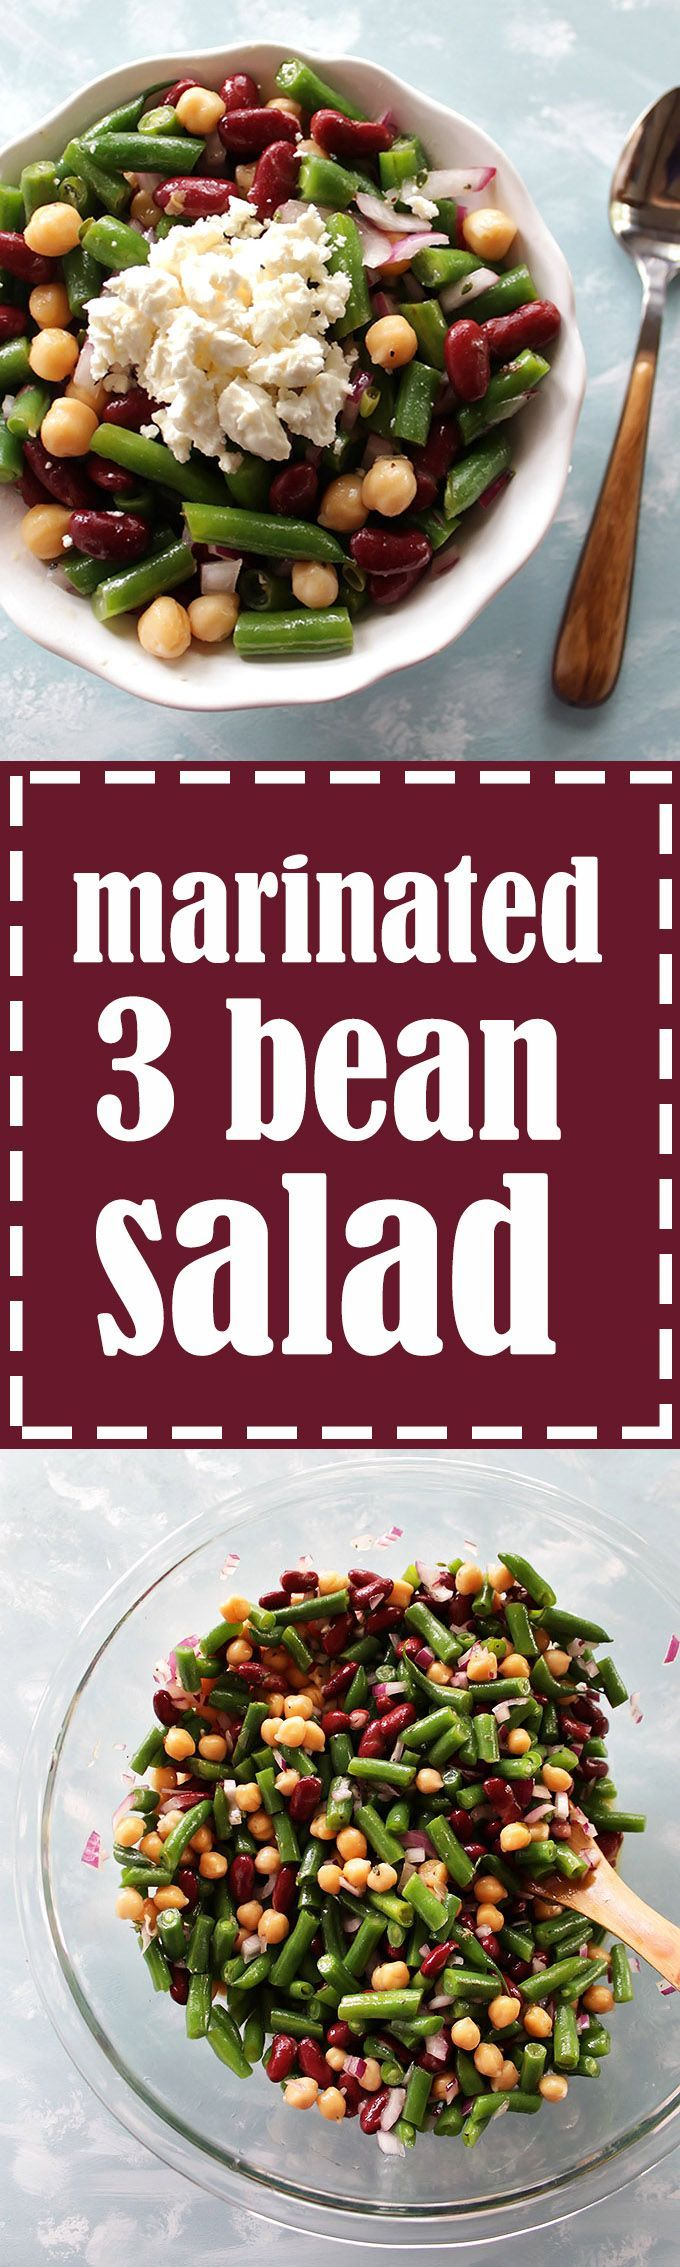 Marinated 3 Bean Salad - This salad is perfect for school/work lunches or prepping meals. It makes a huge batch and lasts for up to one week! Crunchy green beans, creamy red kidney beans, and chickpea